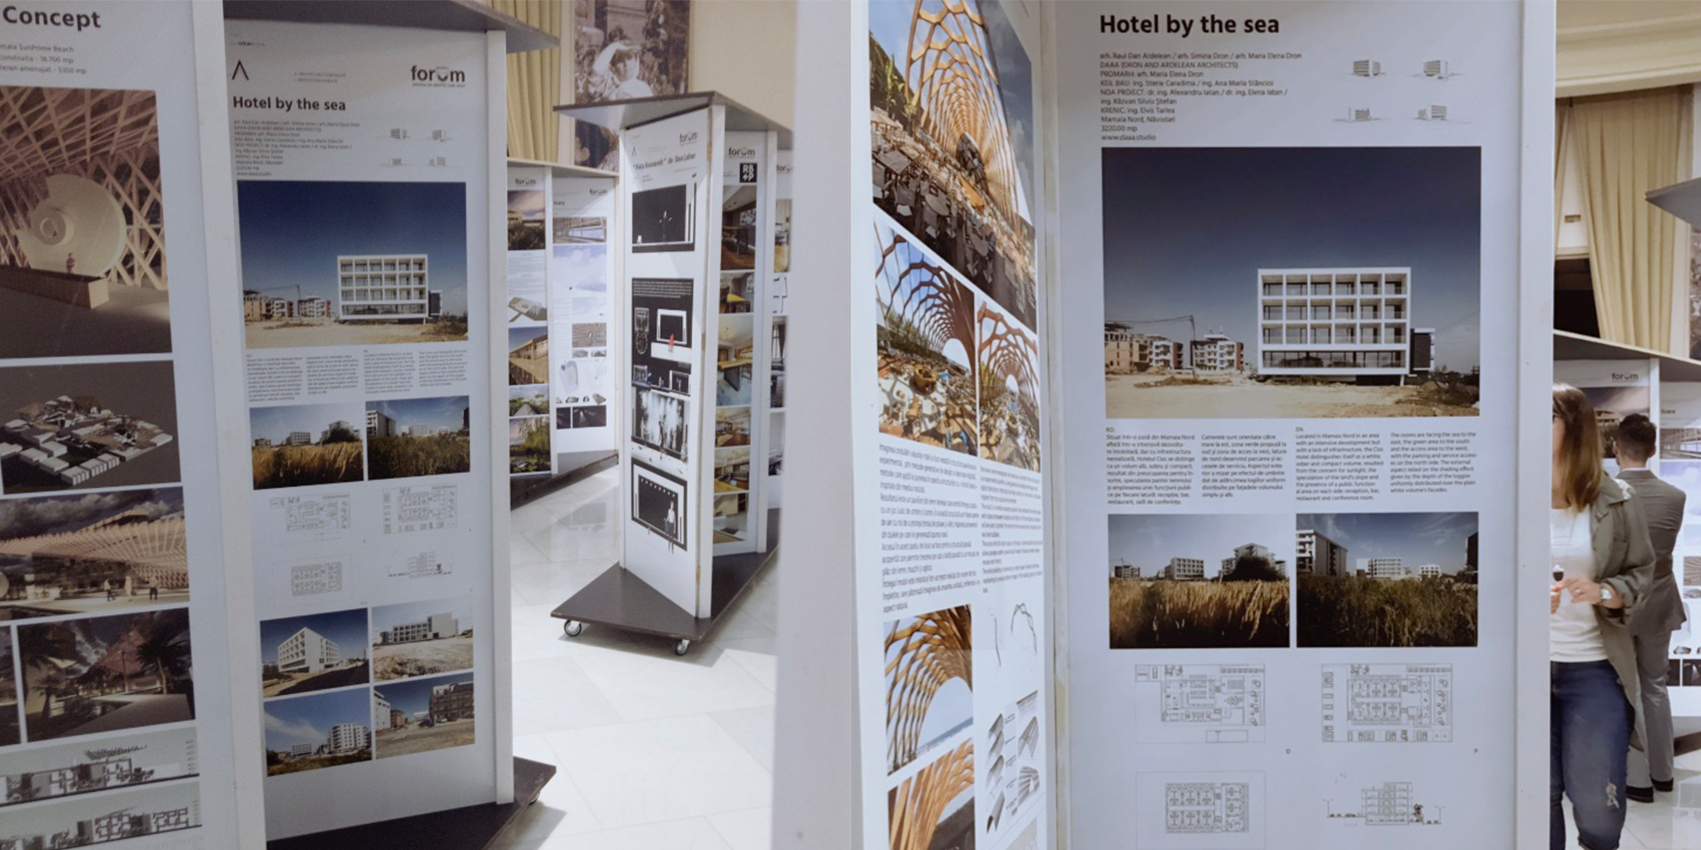 HOTEL BY THE SEA presented and nominated at The Bucharest Architecture Annual / Anuala de Arhitectură București 2019 in the Public Architecture category - Hotel by the sea (Clas Hotel) project was presented in AAB 2019 exhibition and it received a nomination for the best project in the Public Architecture category.More details here:https://www.anuala.roAnd here:https://www.anuala.ro/proiecte/2019/147/